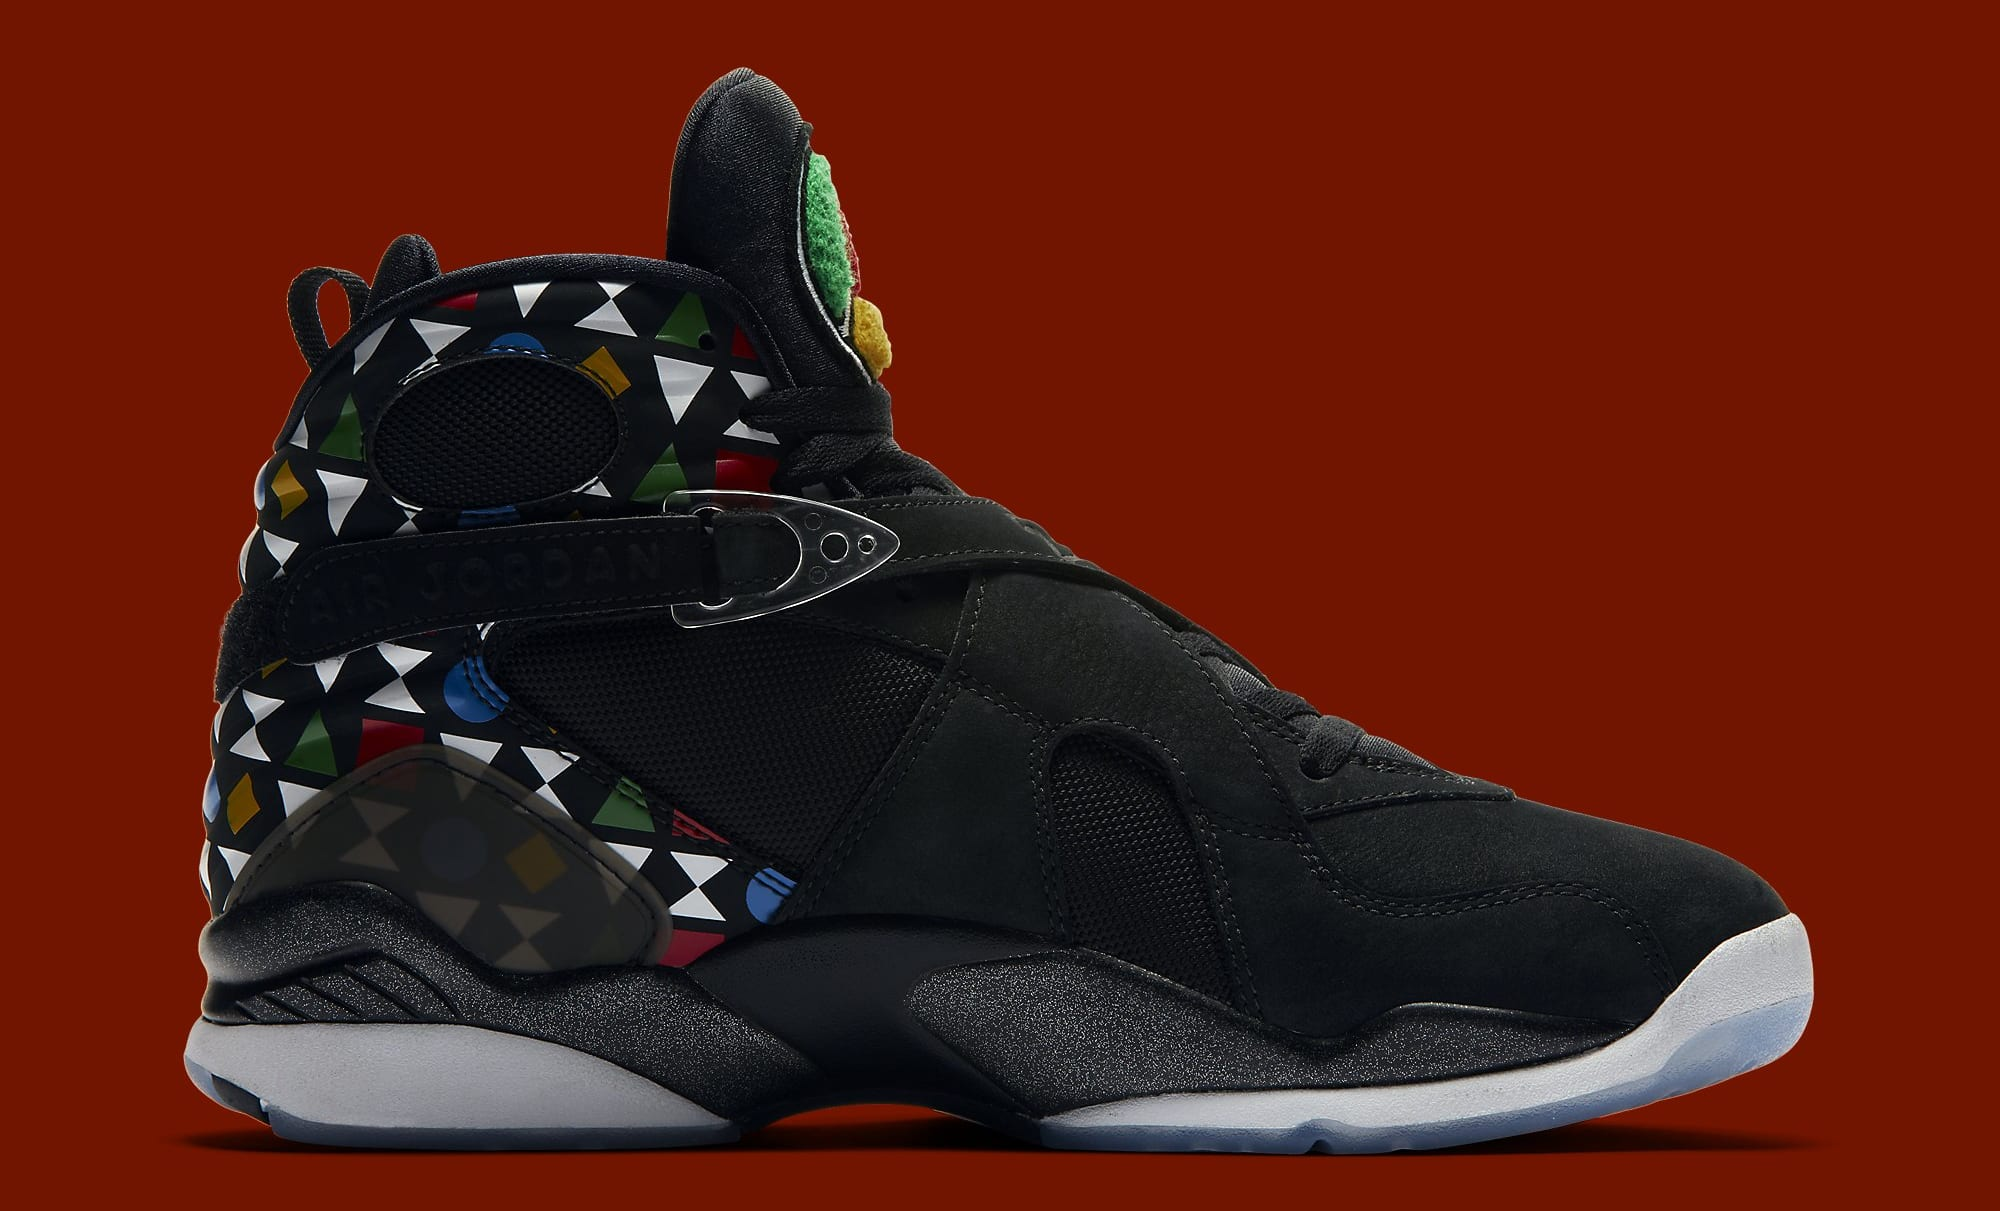 Air Jordan 8 Retro 'Quai 54' CJ9218-001 Medial